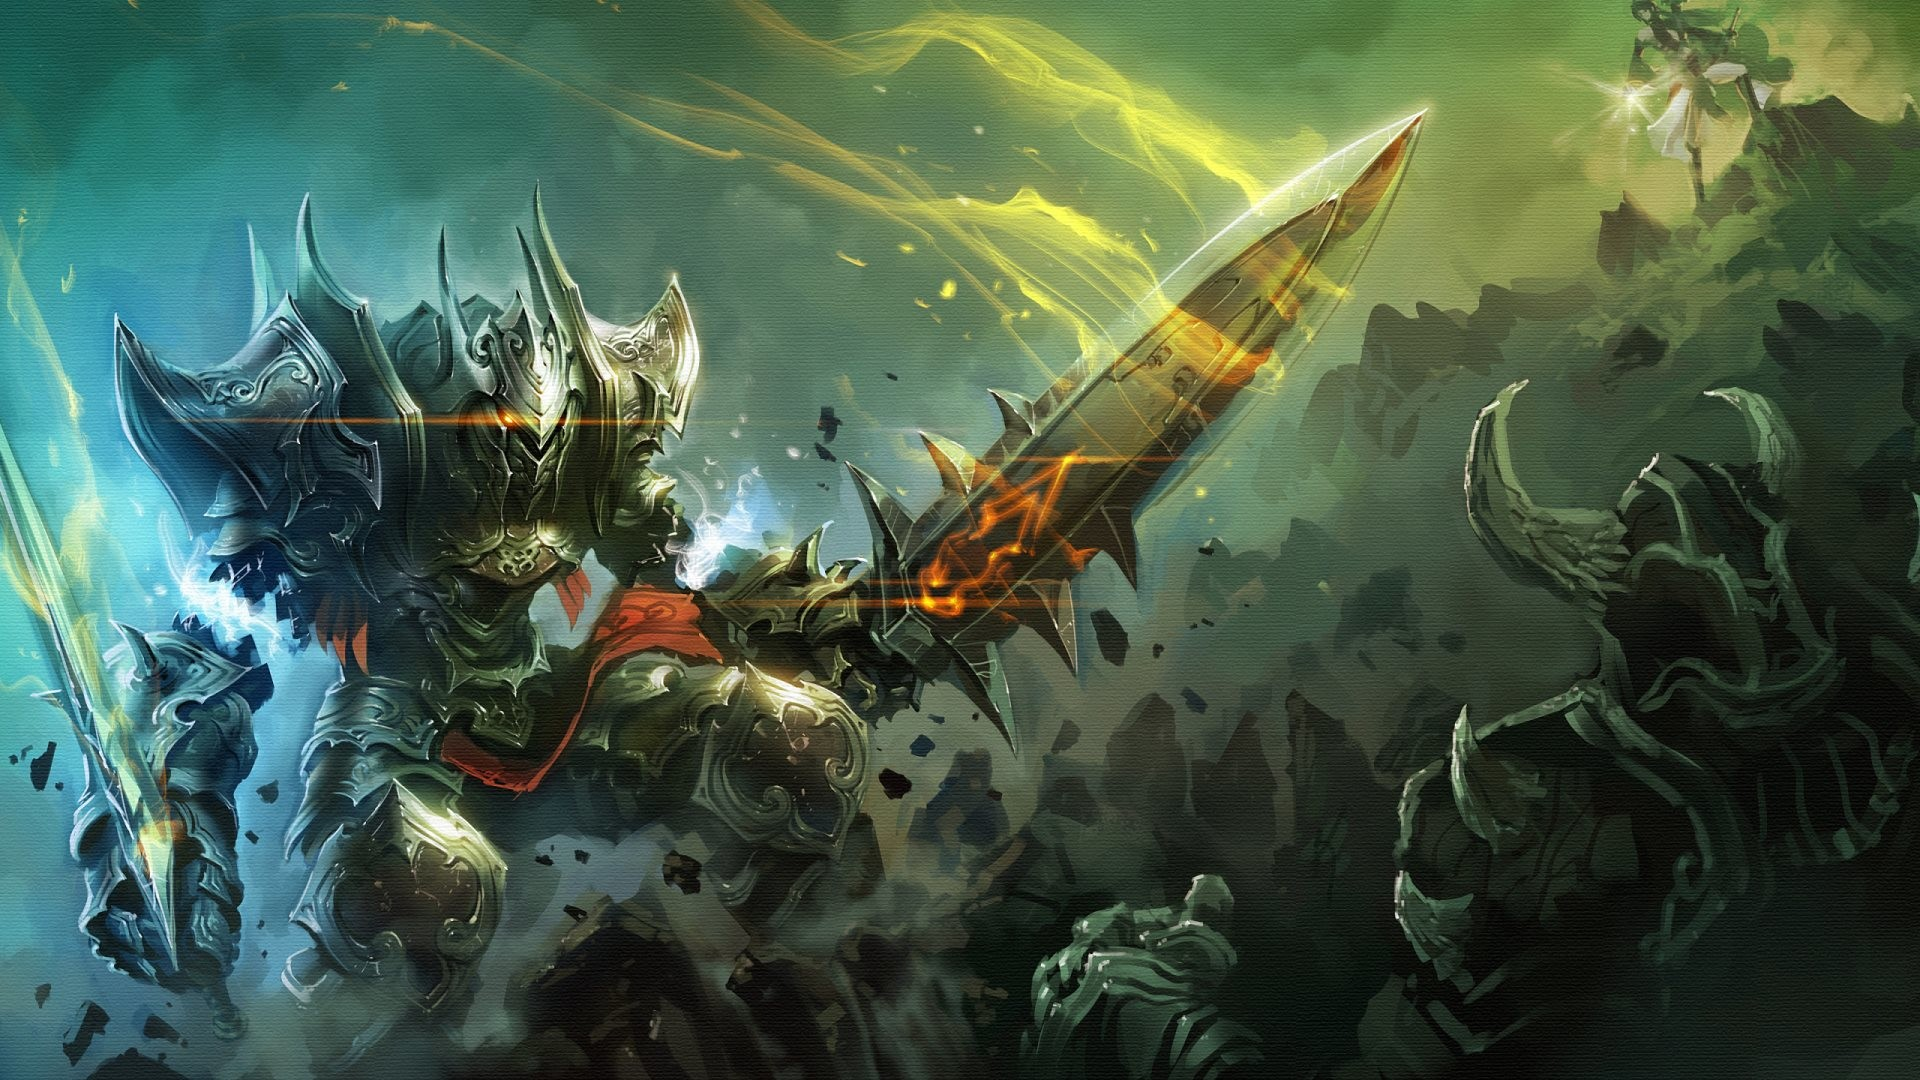 Res: 1920x1080, World Of Legend HD Wallpapers 4 - 1920 X 1080